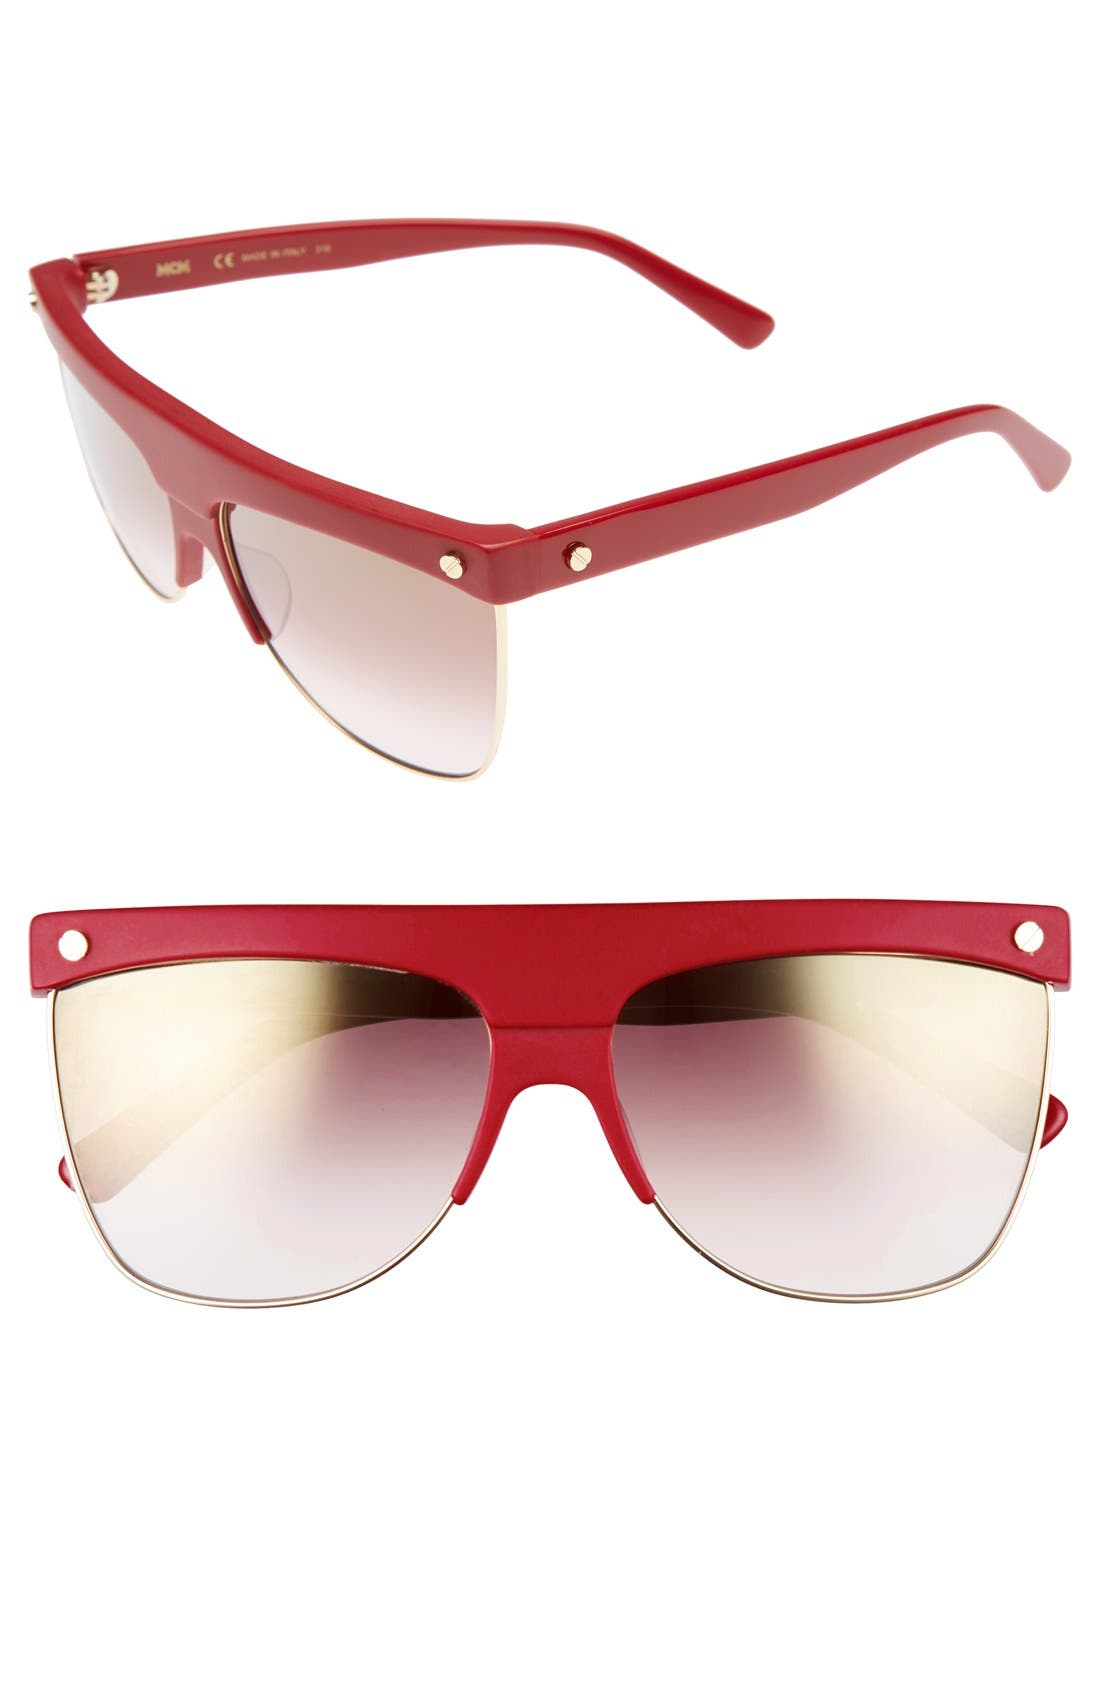 60mm Aviator Sunglasses,                             Main thumbnail 1, color,                             Rouge